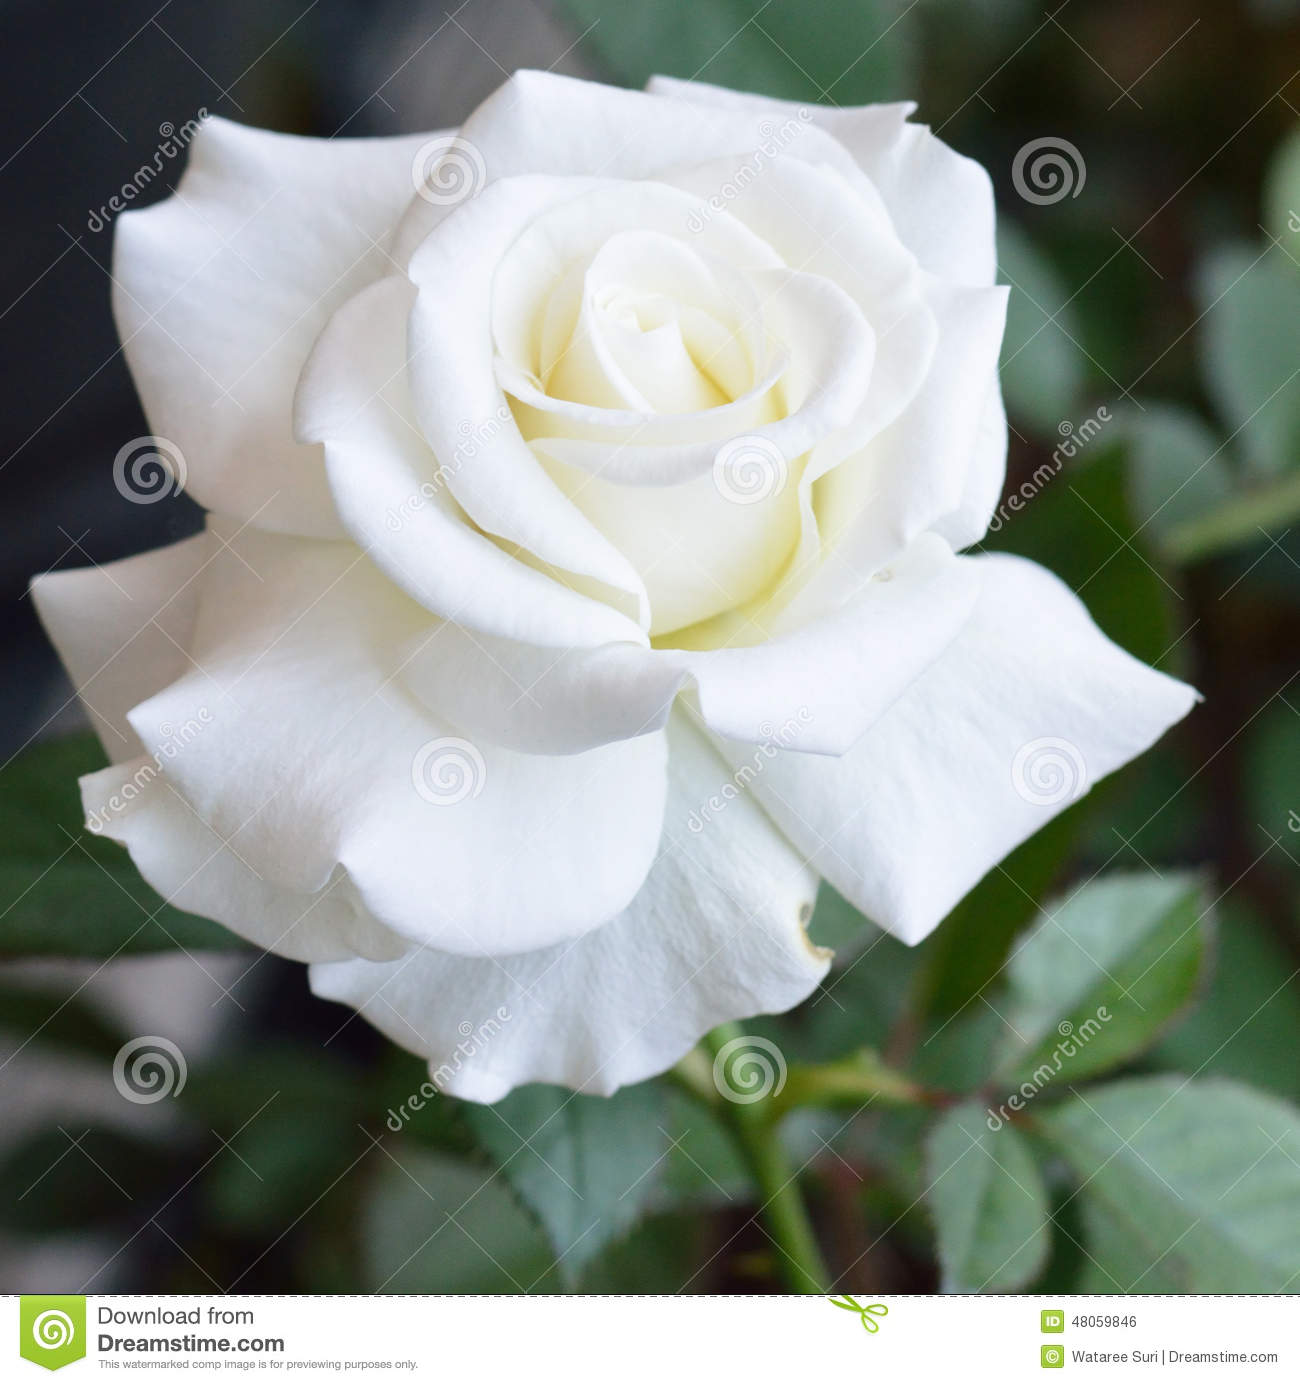 100 Types of the Most Beautiful White Flowers for Your ...  |Beautiful White Rose Flowers